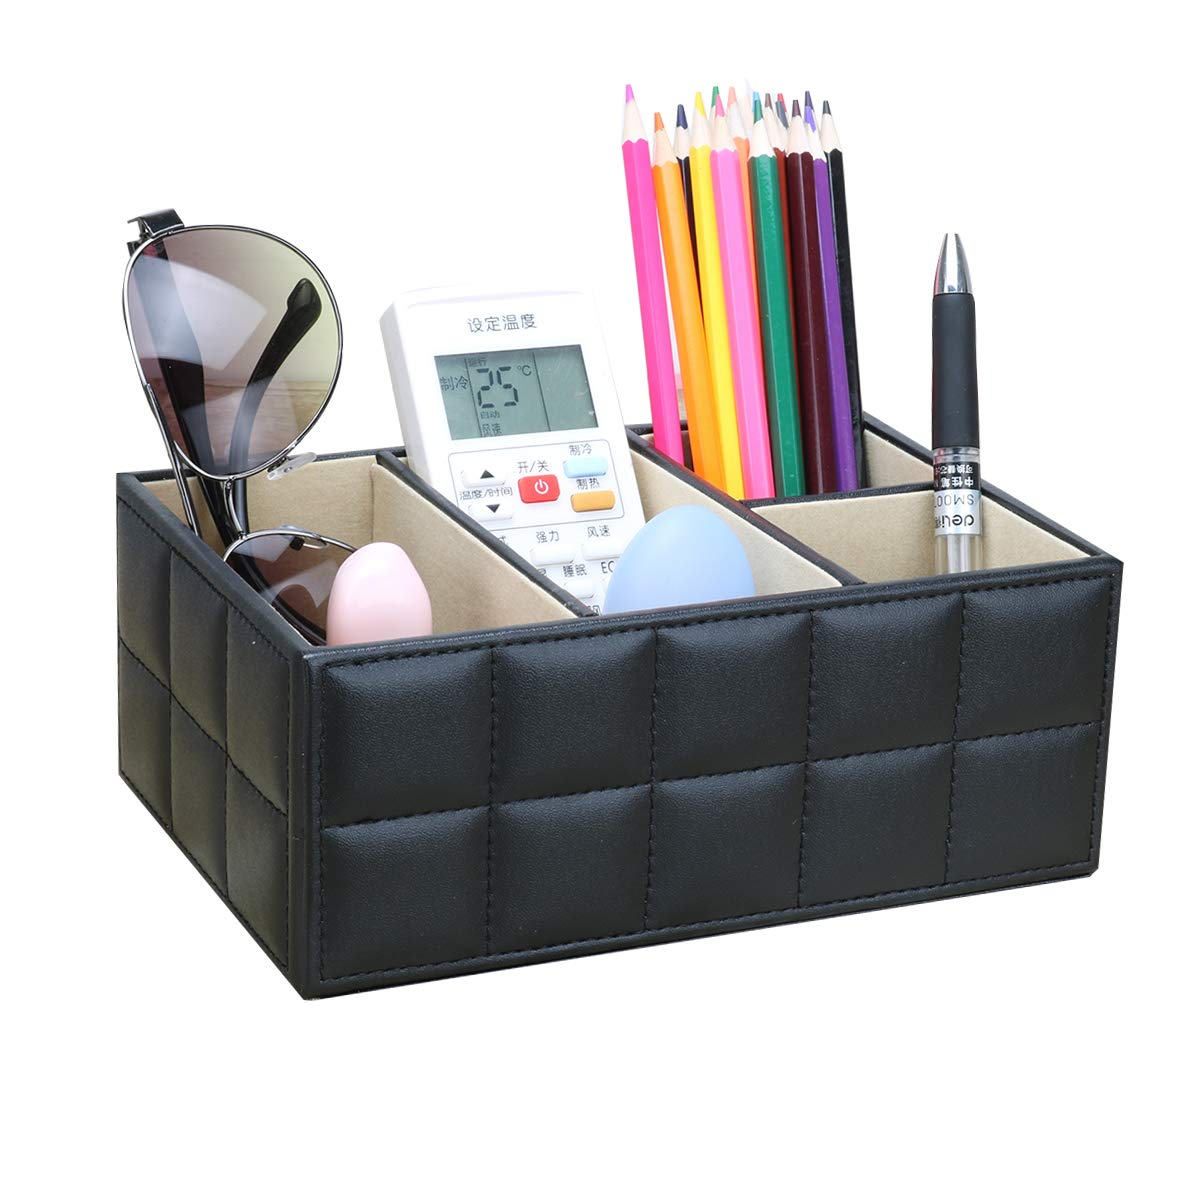 Office Supplies Desk Organizer - 4 Compartments for Pencil, Remote Control, Mobile Phone, Business Cards, Stapler, Cosmetics Holder Storage Box